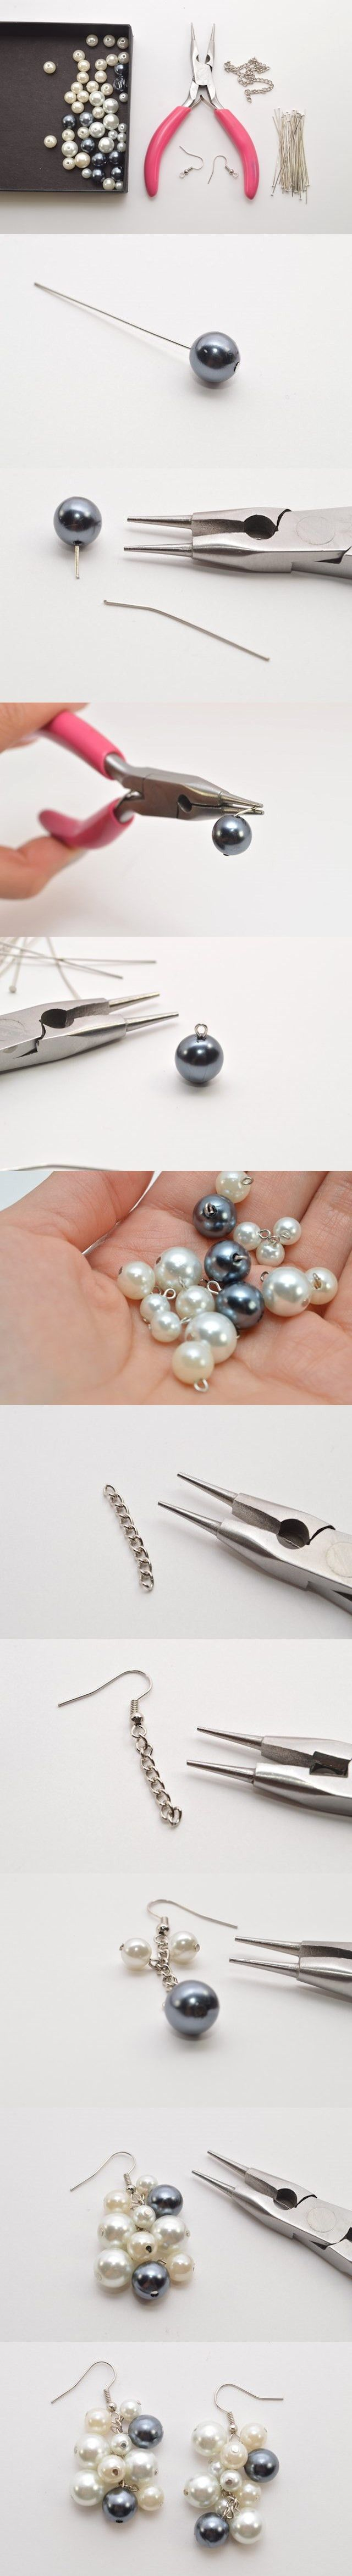 Easy Tutorial on Pretty Pearl Cluster Earrings Making